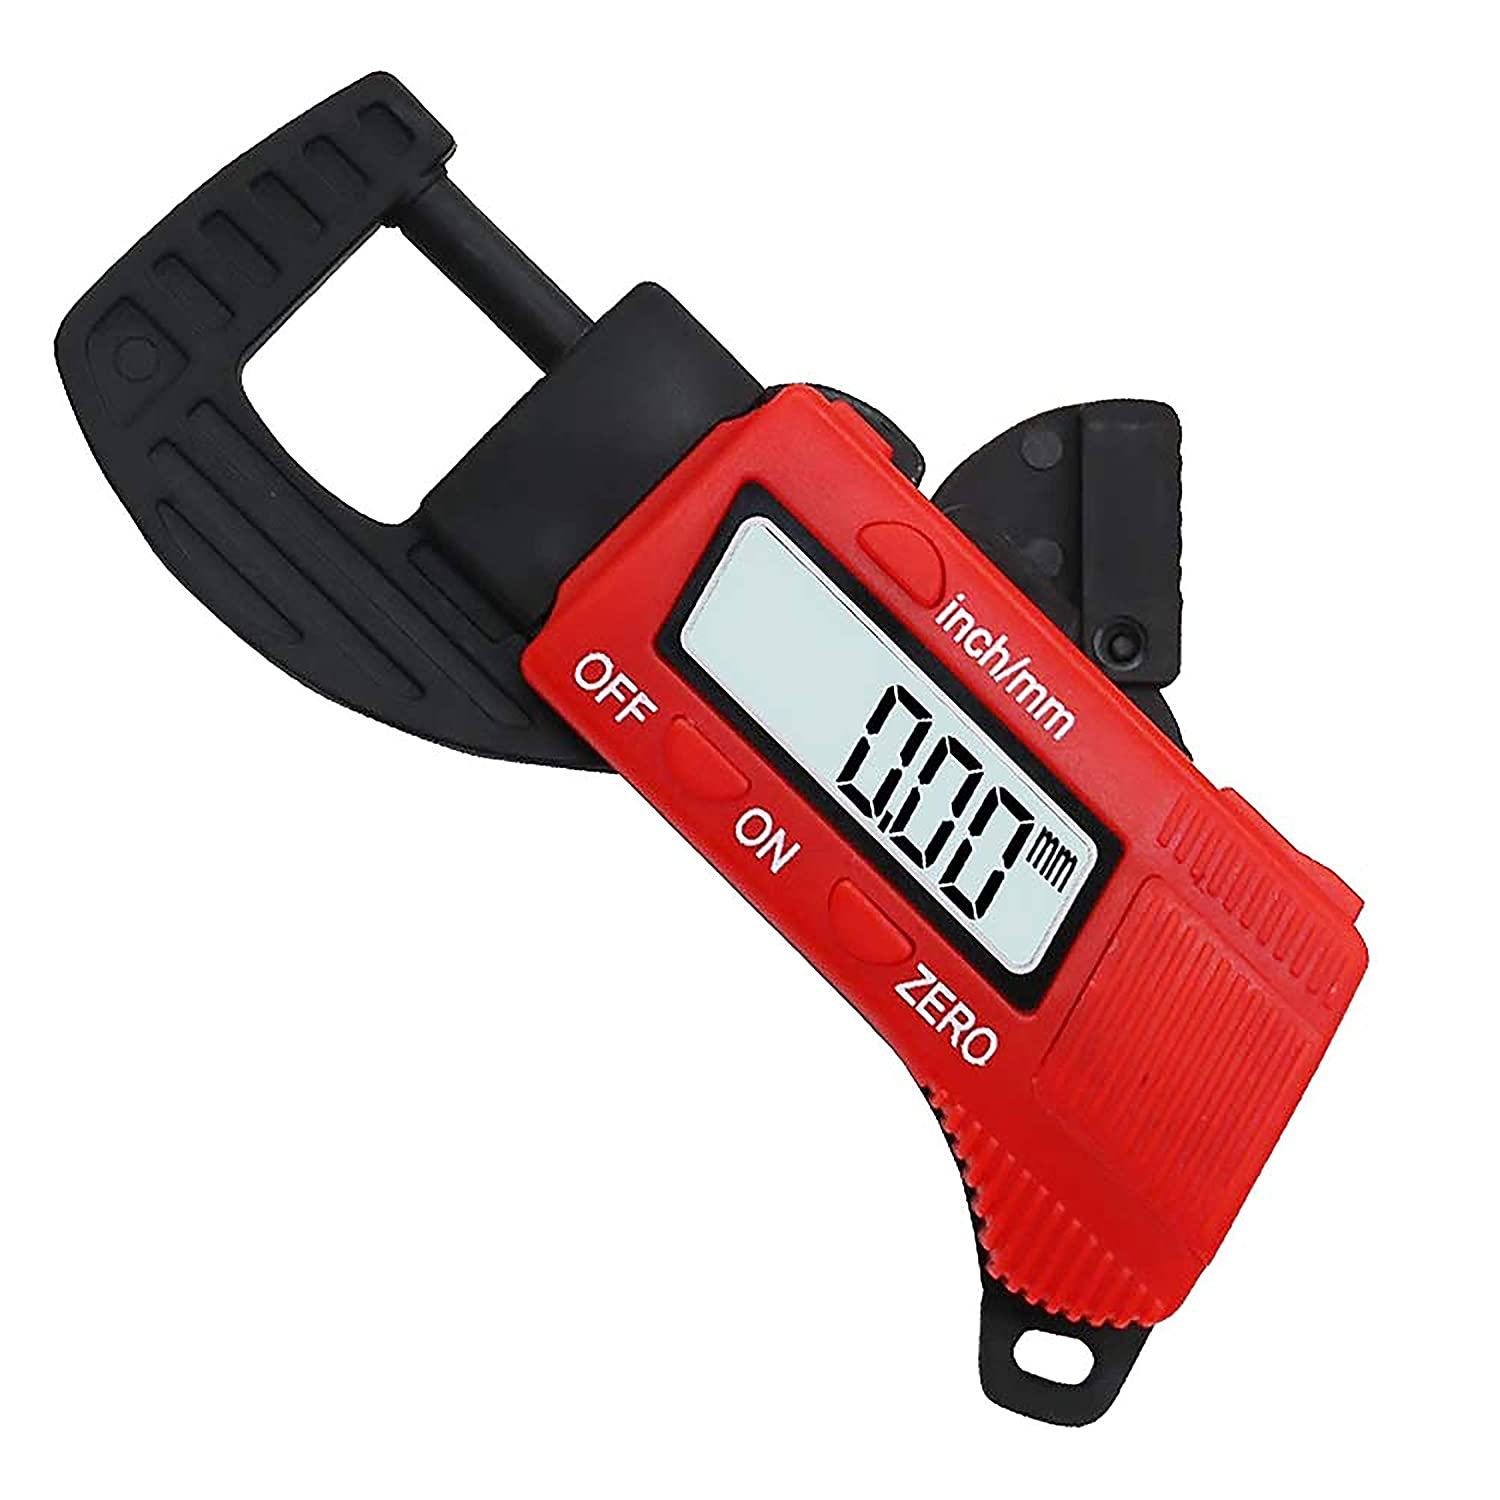 """SABLUE Portable High-Resolution Carbon Fiber Composite Digital Thickness Gauge to Display Thickness in Decimal Inches or Millimeters on Large 8mm LCD Ranging from 0.01mm//inch to 0.5/""""//12.7mm"""